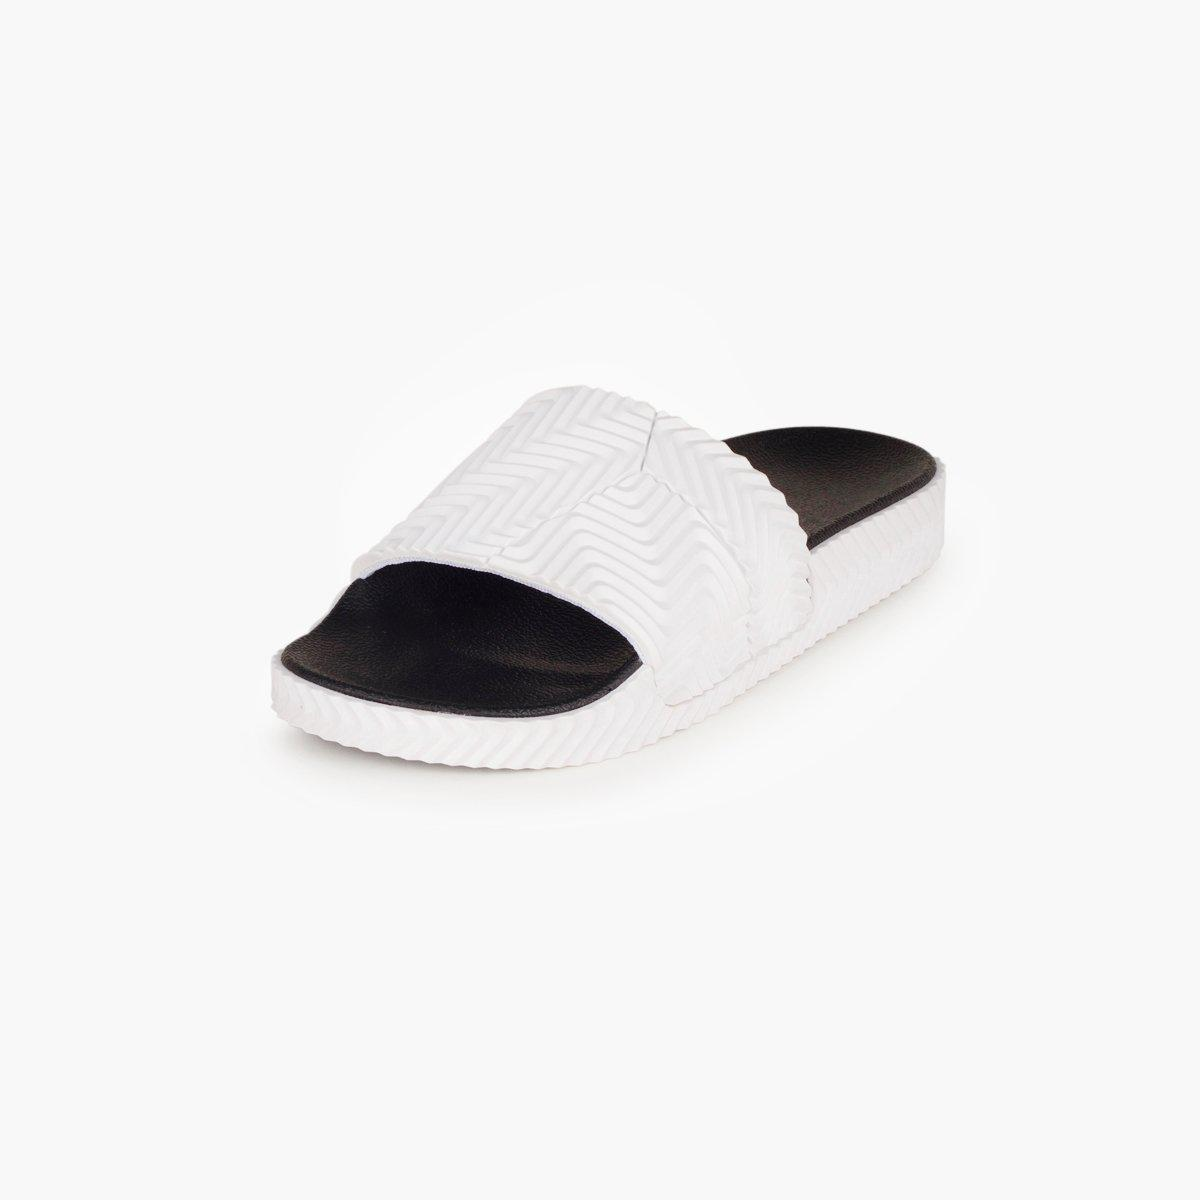 d99af6106 ... Adidas Originals By Alexander Wang Adilette - Lyst. View fullscreen